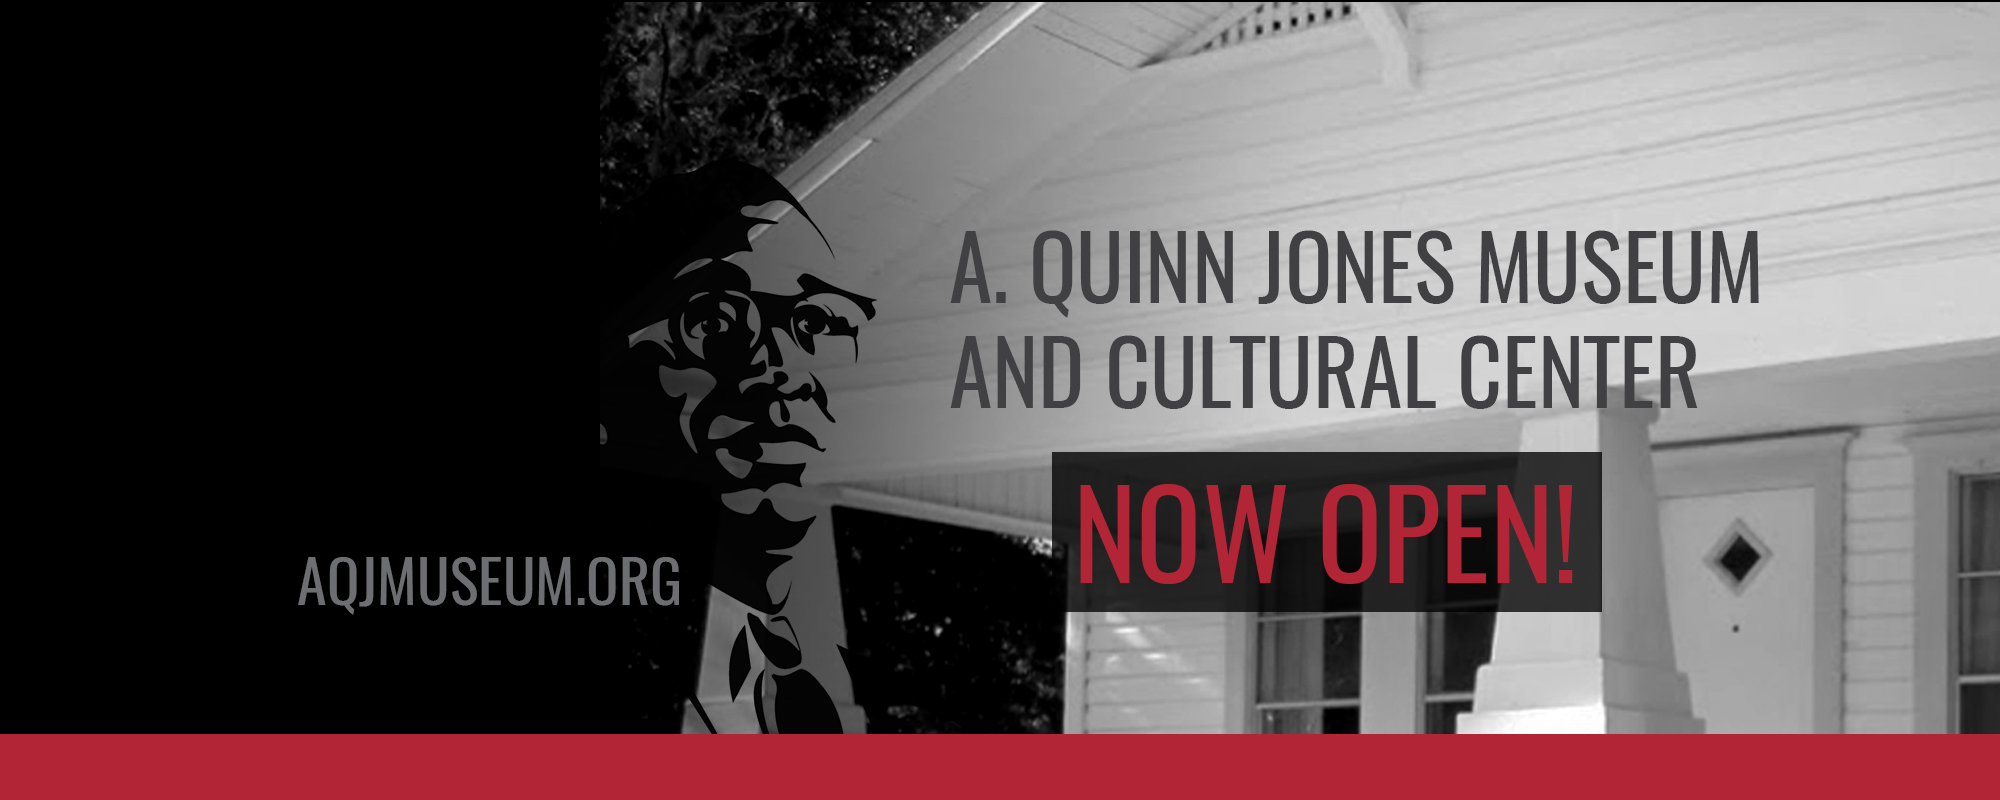 A. Quinn Jones Museum & Cultural Center to Receive Cultural Heritage Award